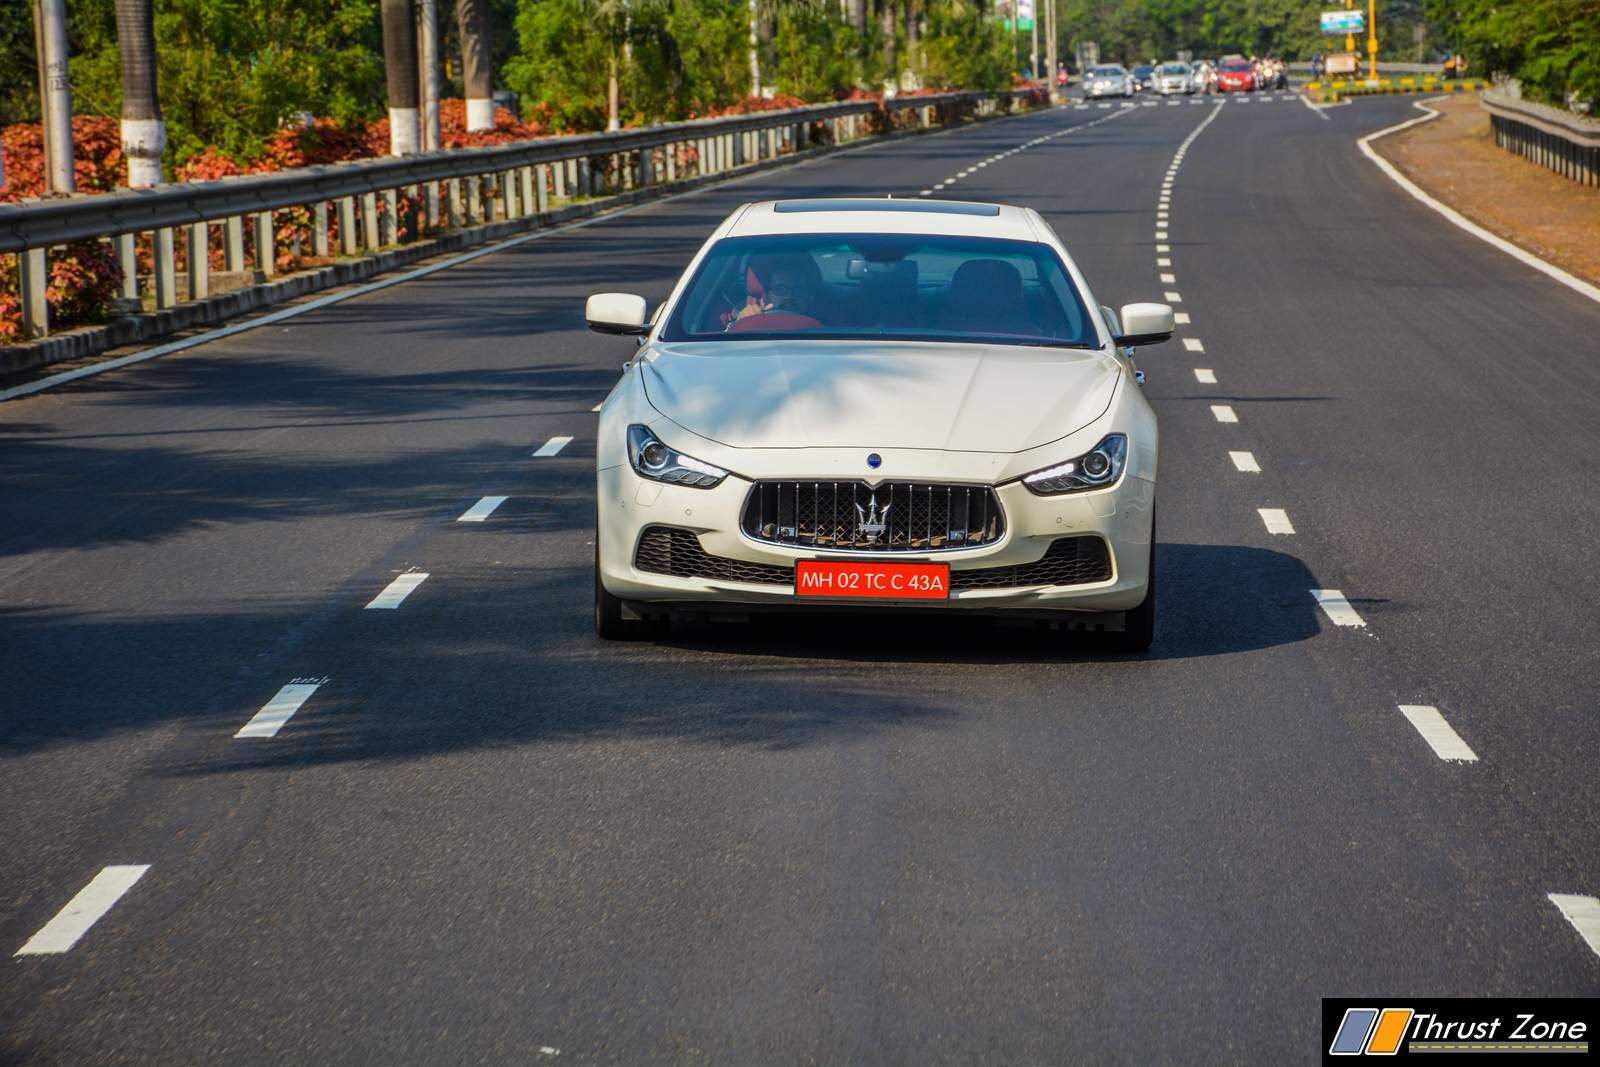 https://www.thrustzone.com/wp-content/uploads/2018/02/Maserati-Ghibli-India-diesel-review-10.jpg